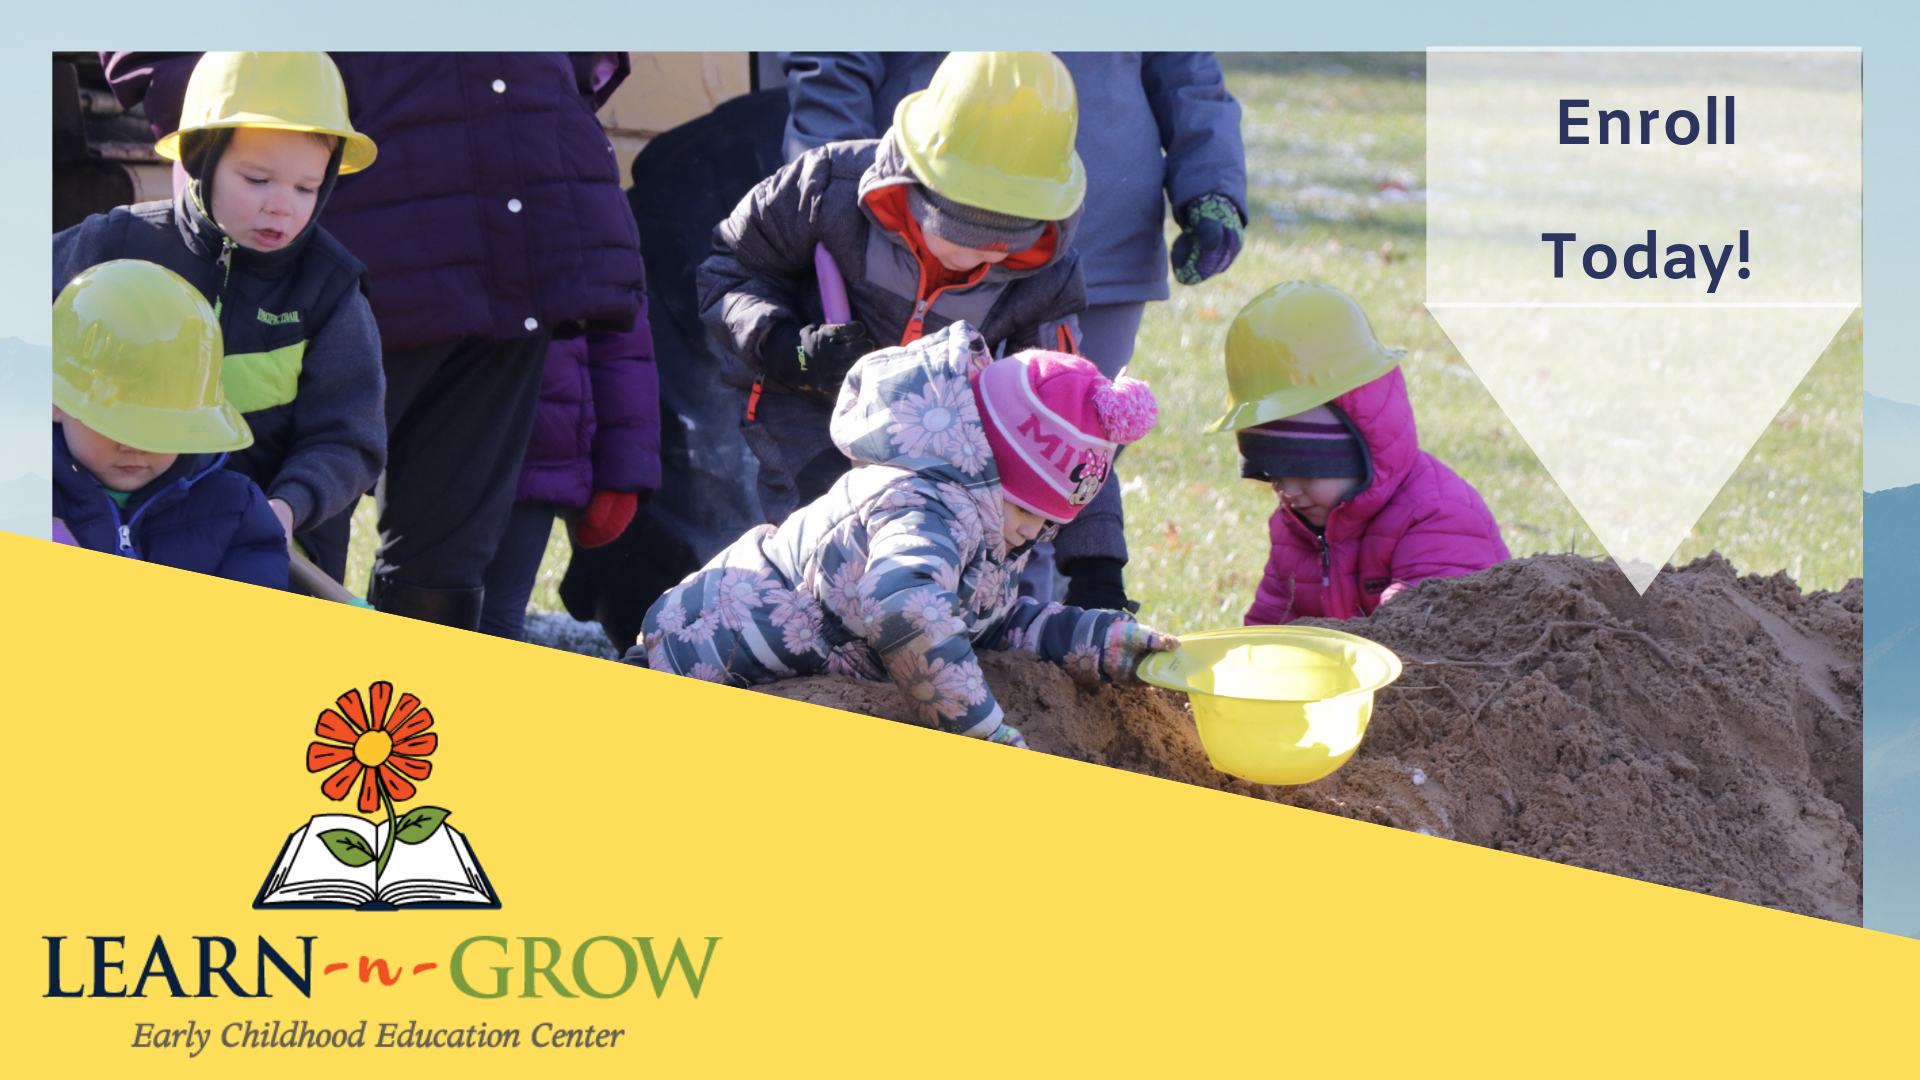 kids at groundbreaking with learn 'n grow logo and flag with enrollment info